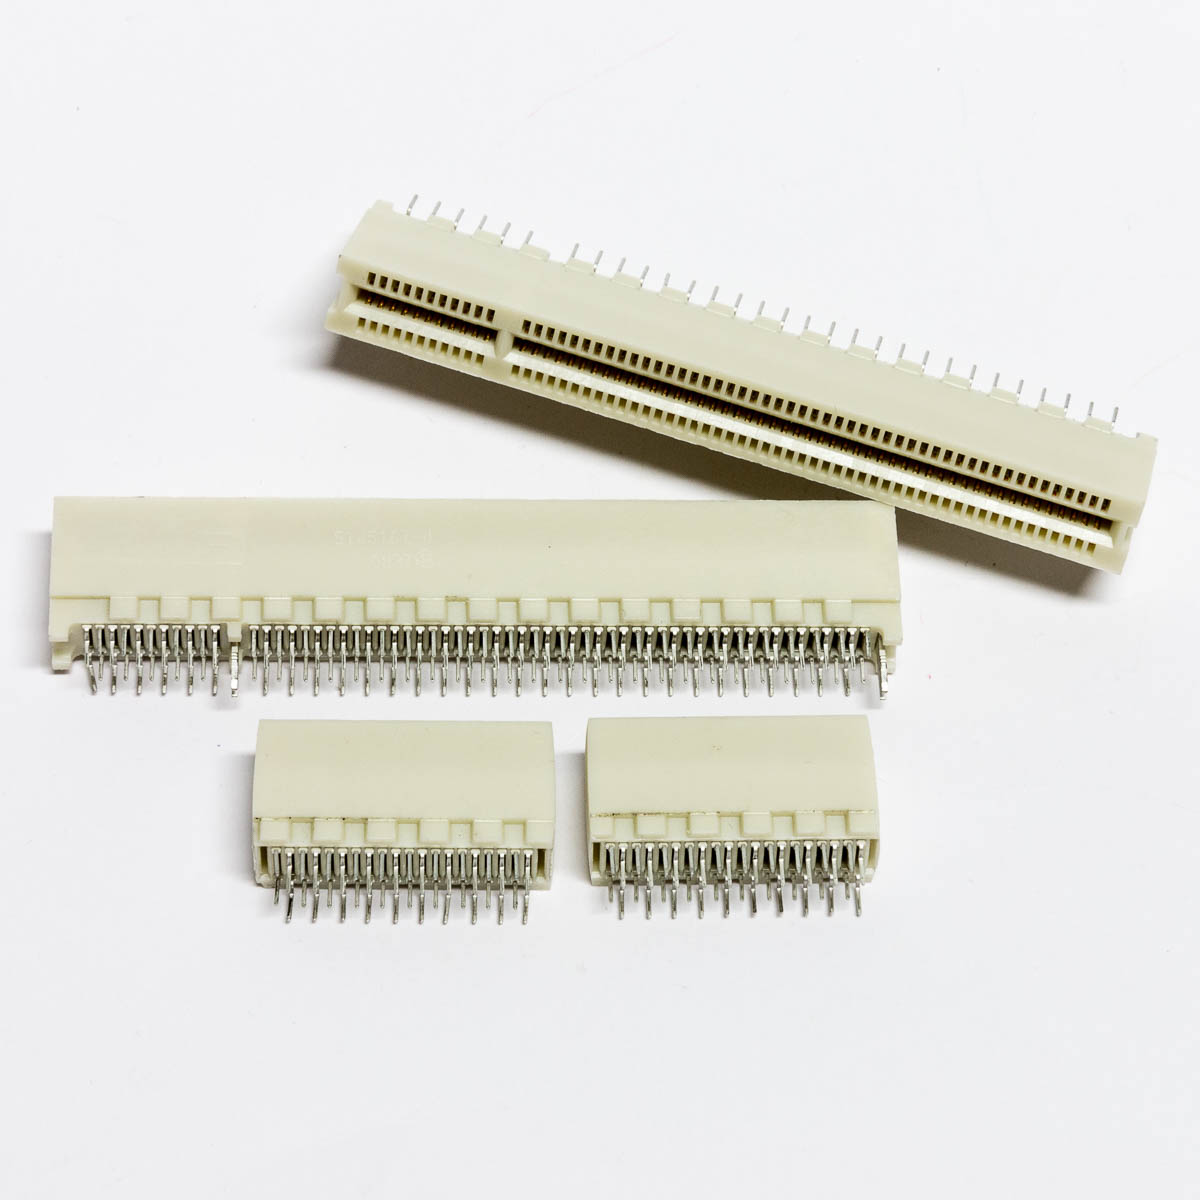 PCI slots cut apart for application in cartridge adapters